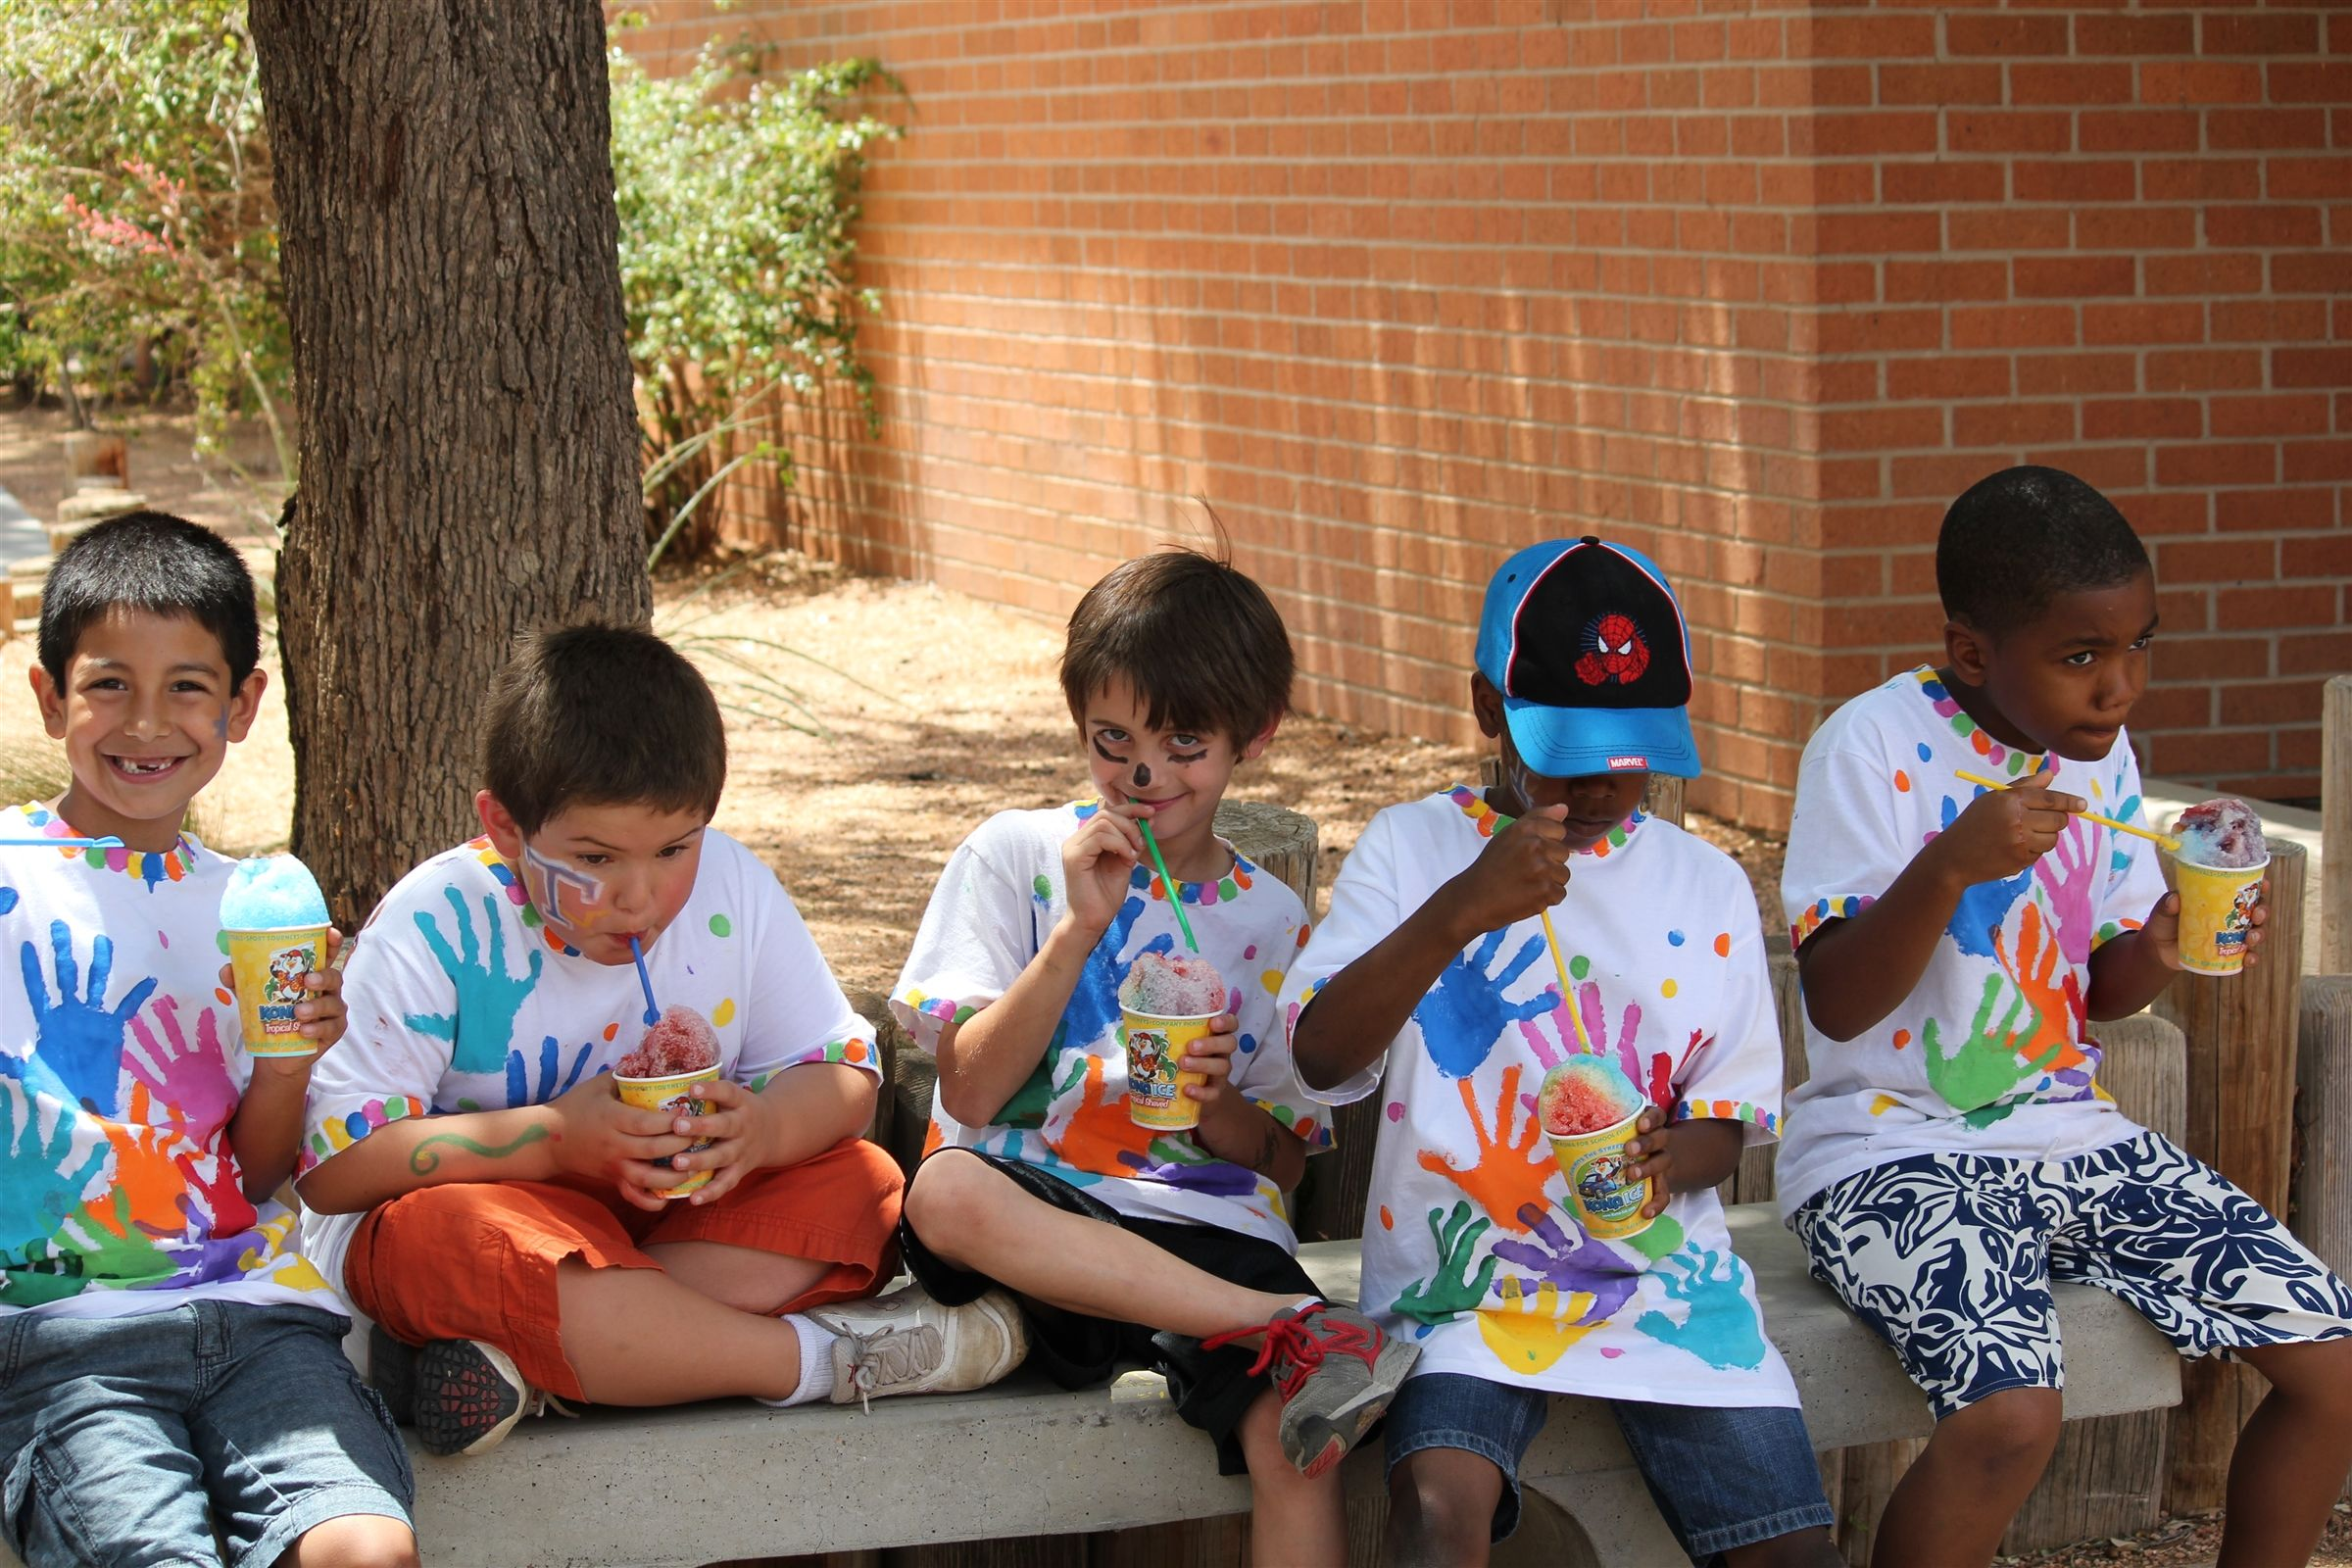 Trinity School of Midland students sit on the sidewalk with painted t-shirts after field day.